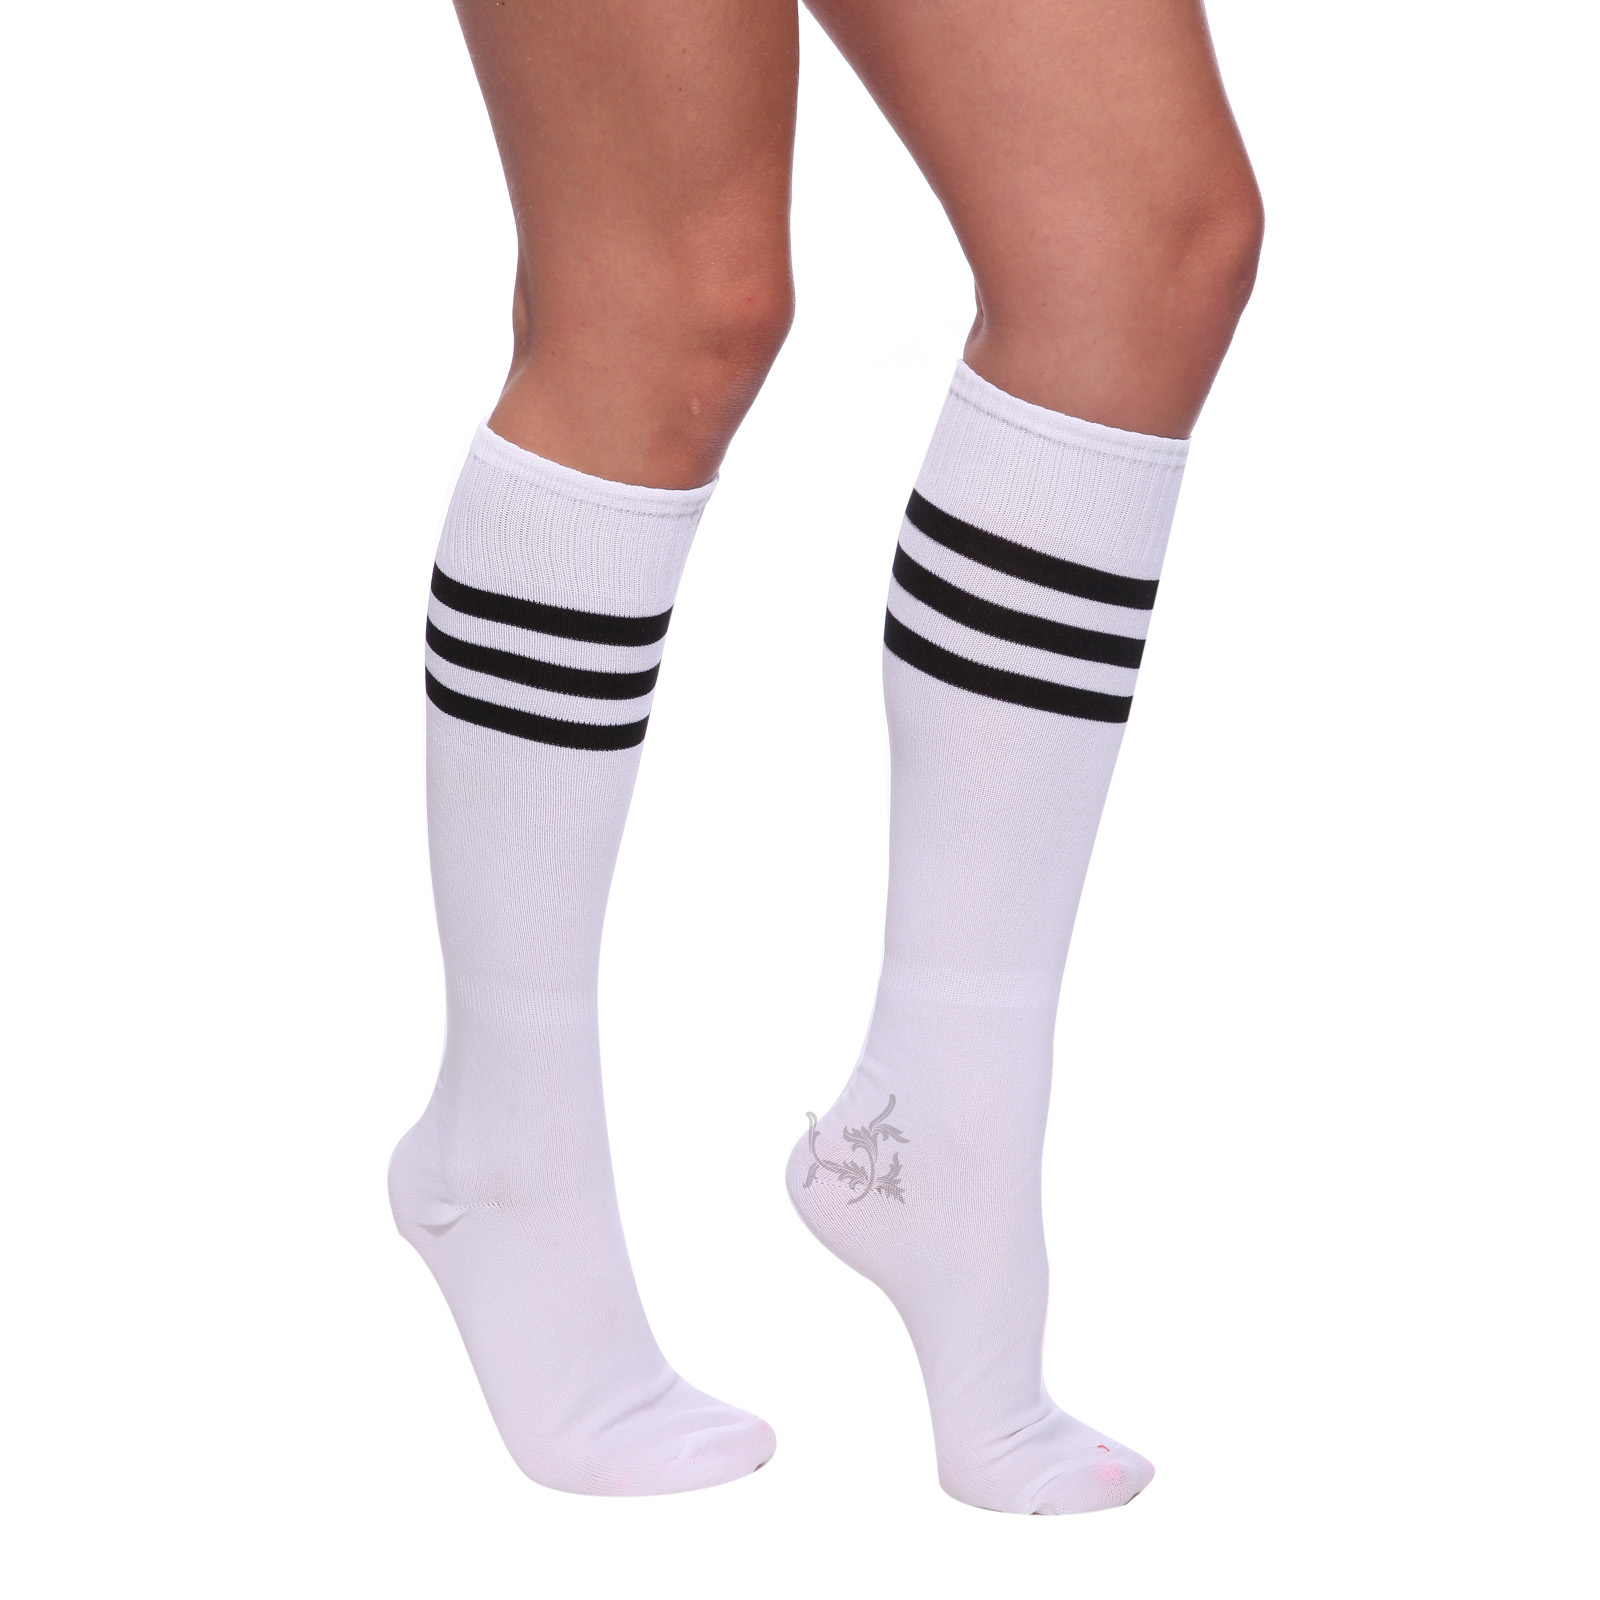 Find your adidas Sport Knee Socks at hereuloadu5.ga All styles and colors available in the official adidas online store.